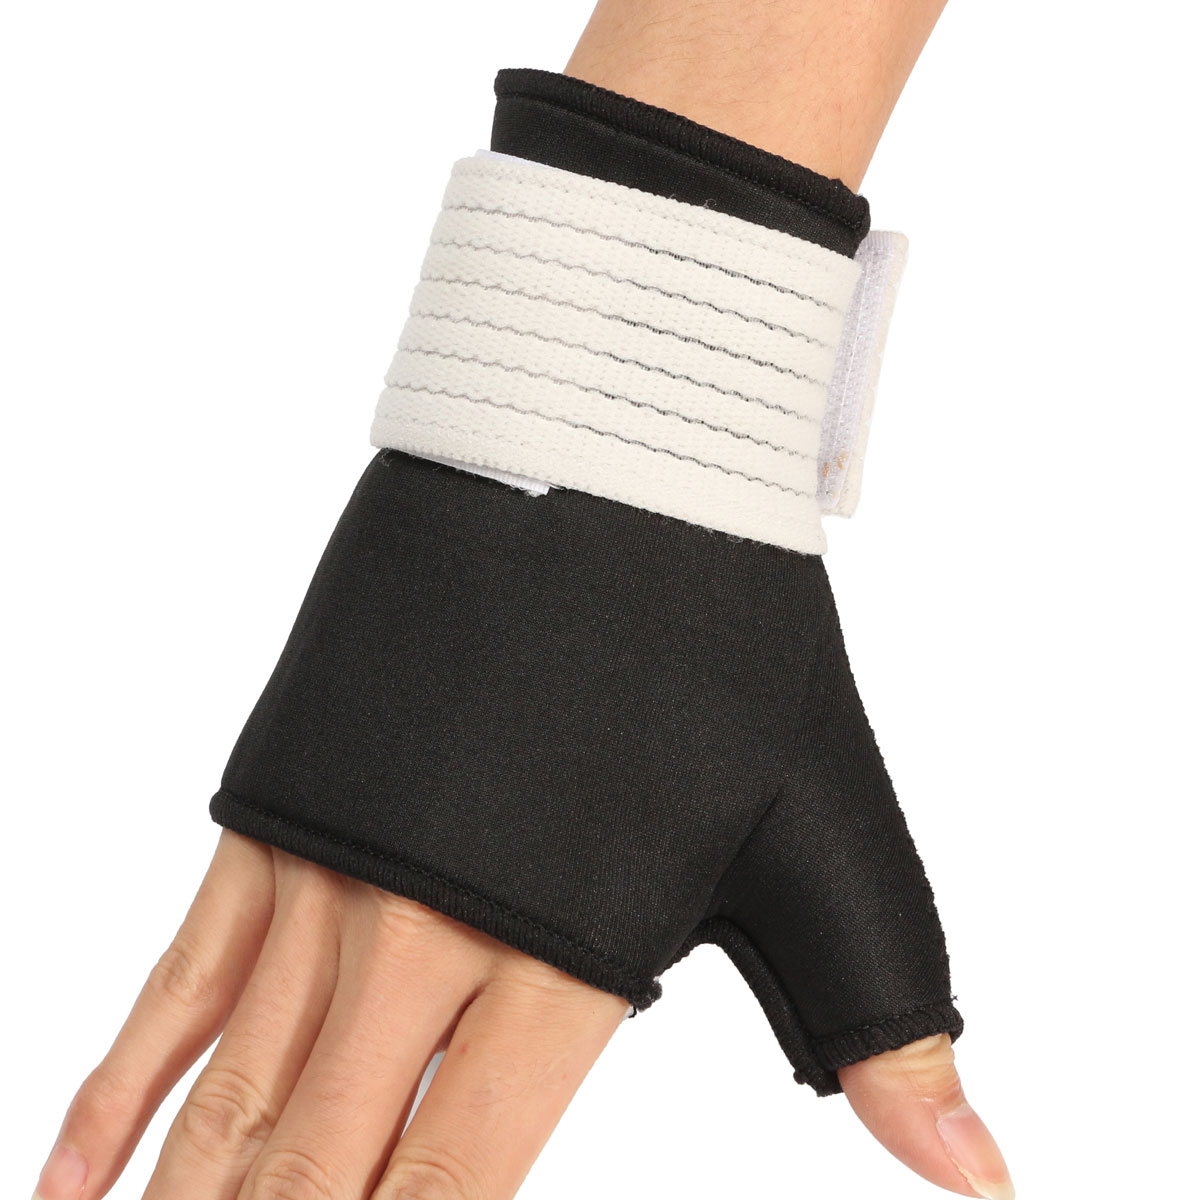 Hand Wrap Gloves Compare Prices On Thumb Glove Online Shopping Buy Low Price Thumb